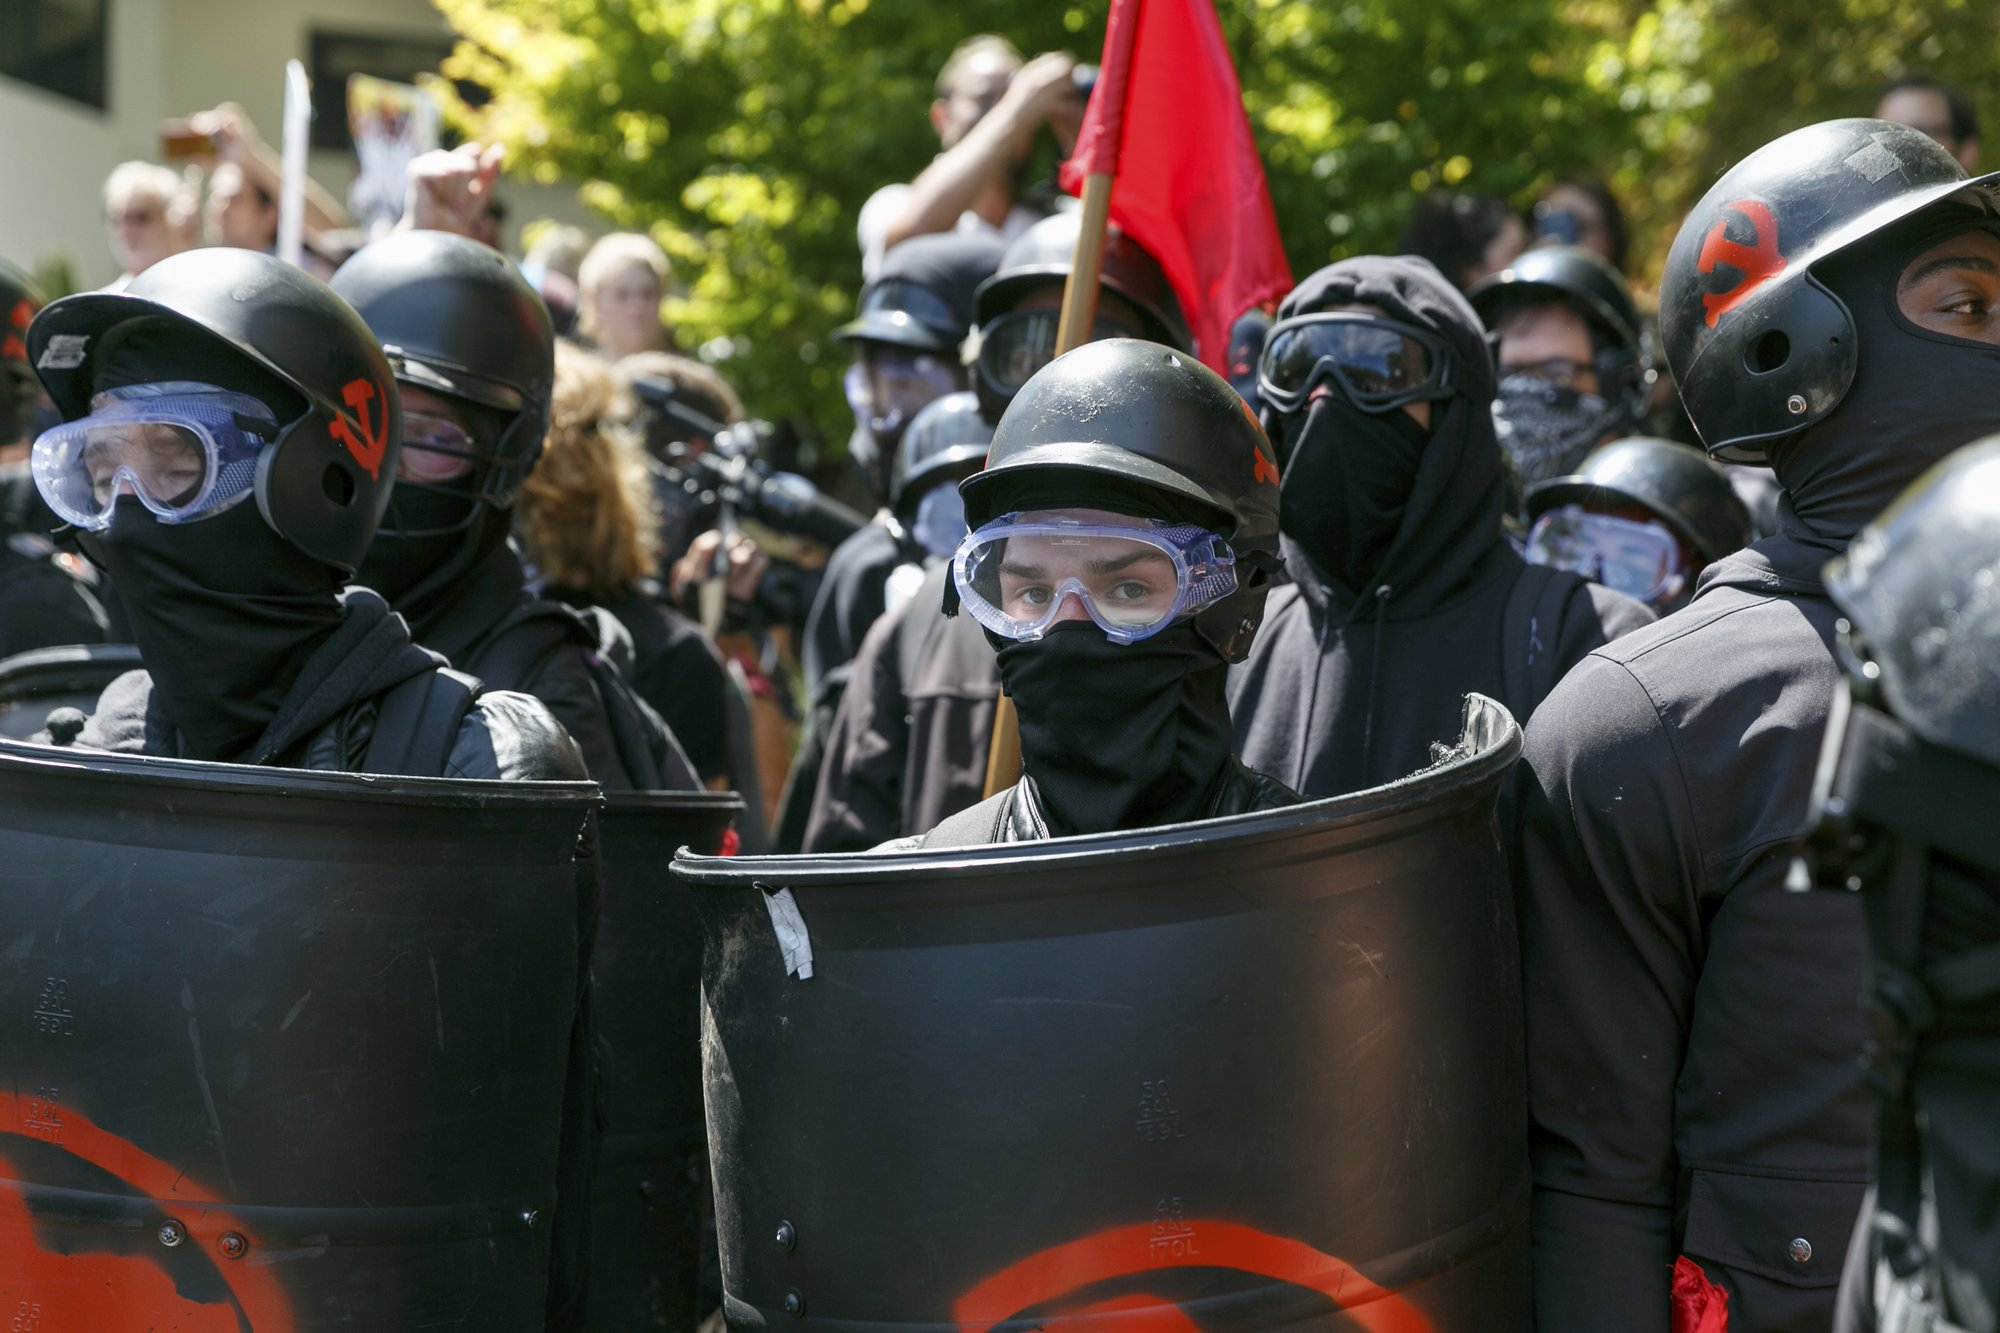 AP Explains: A look at rallies, recent tension in Portland